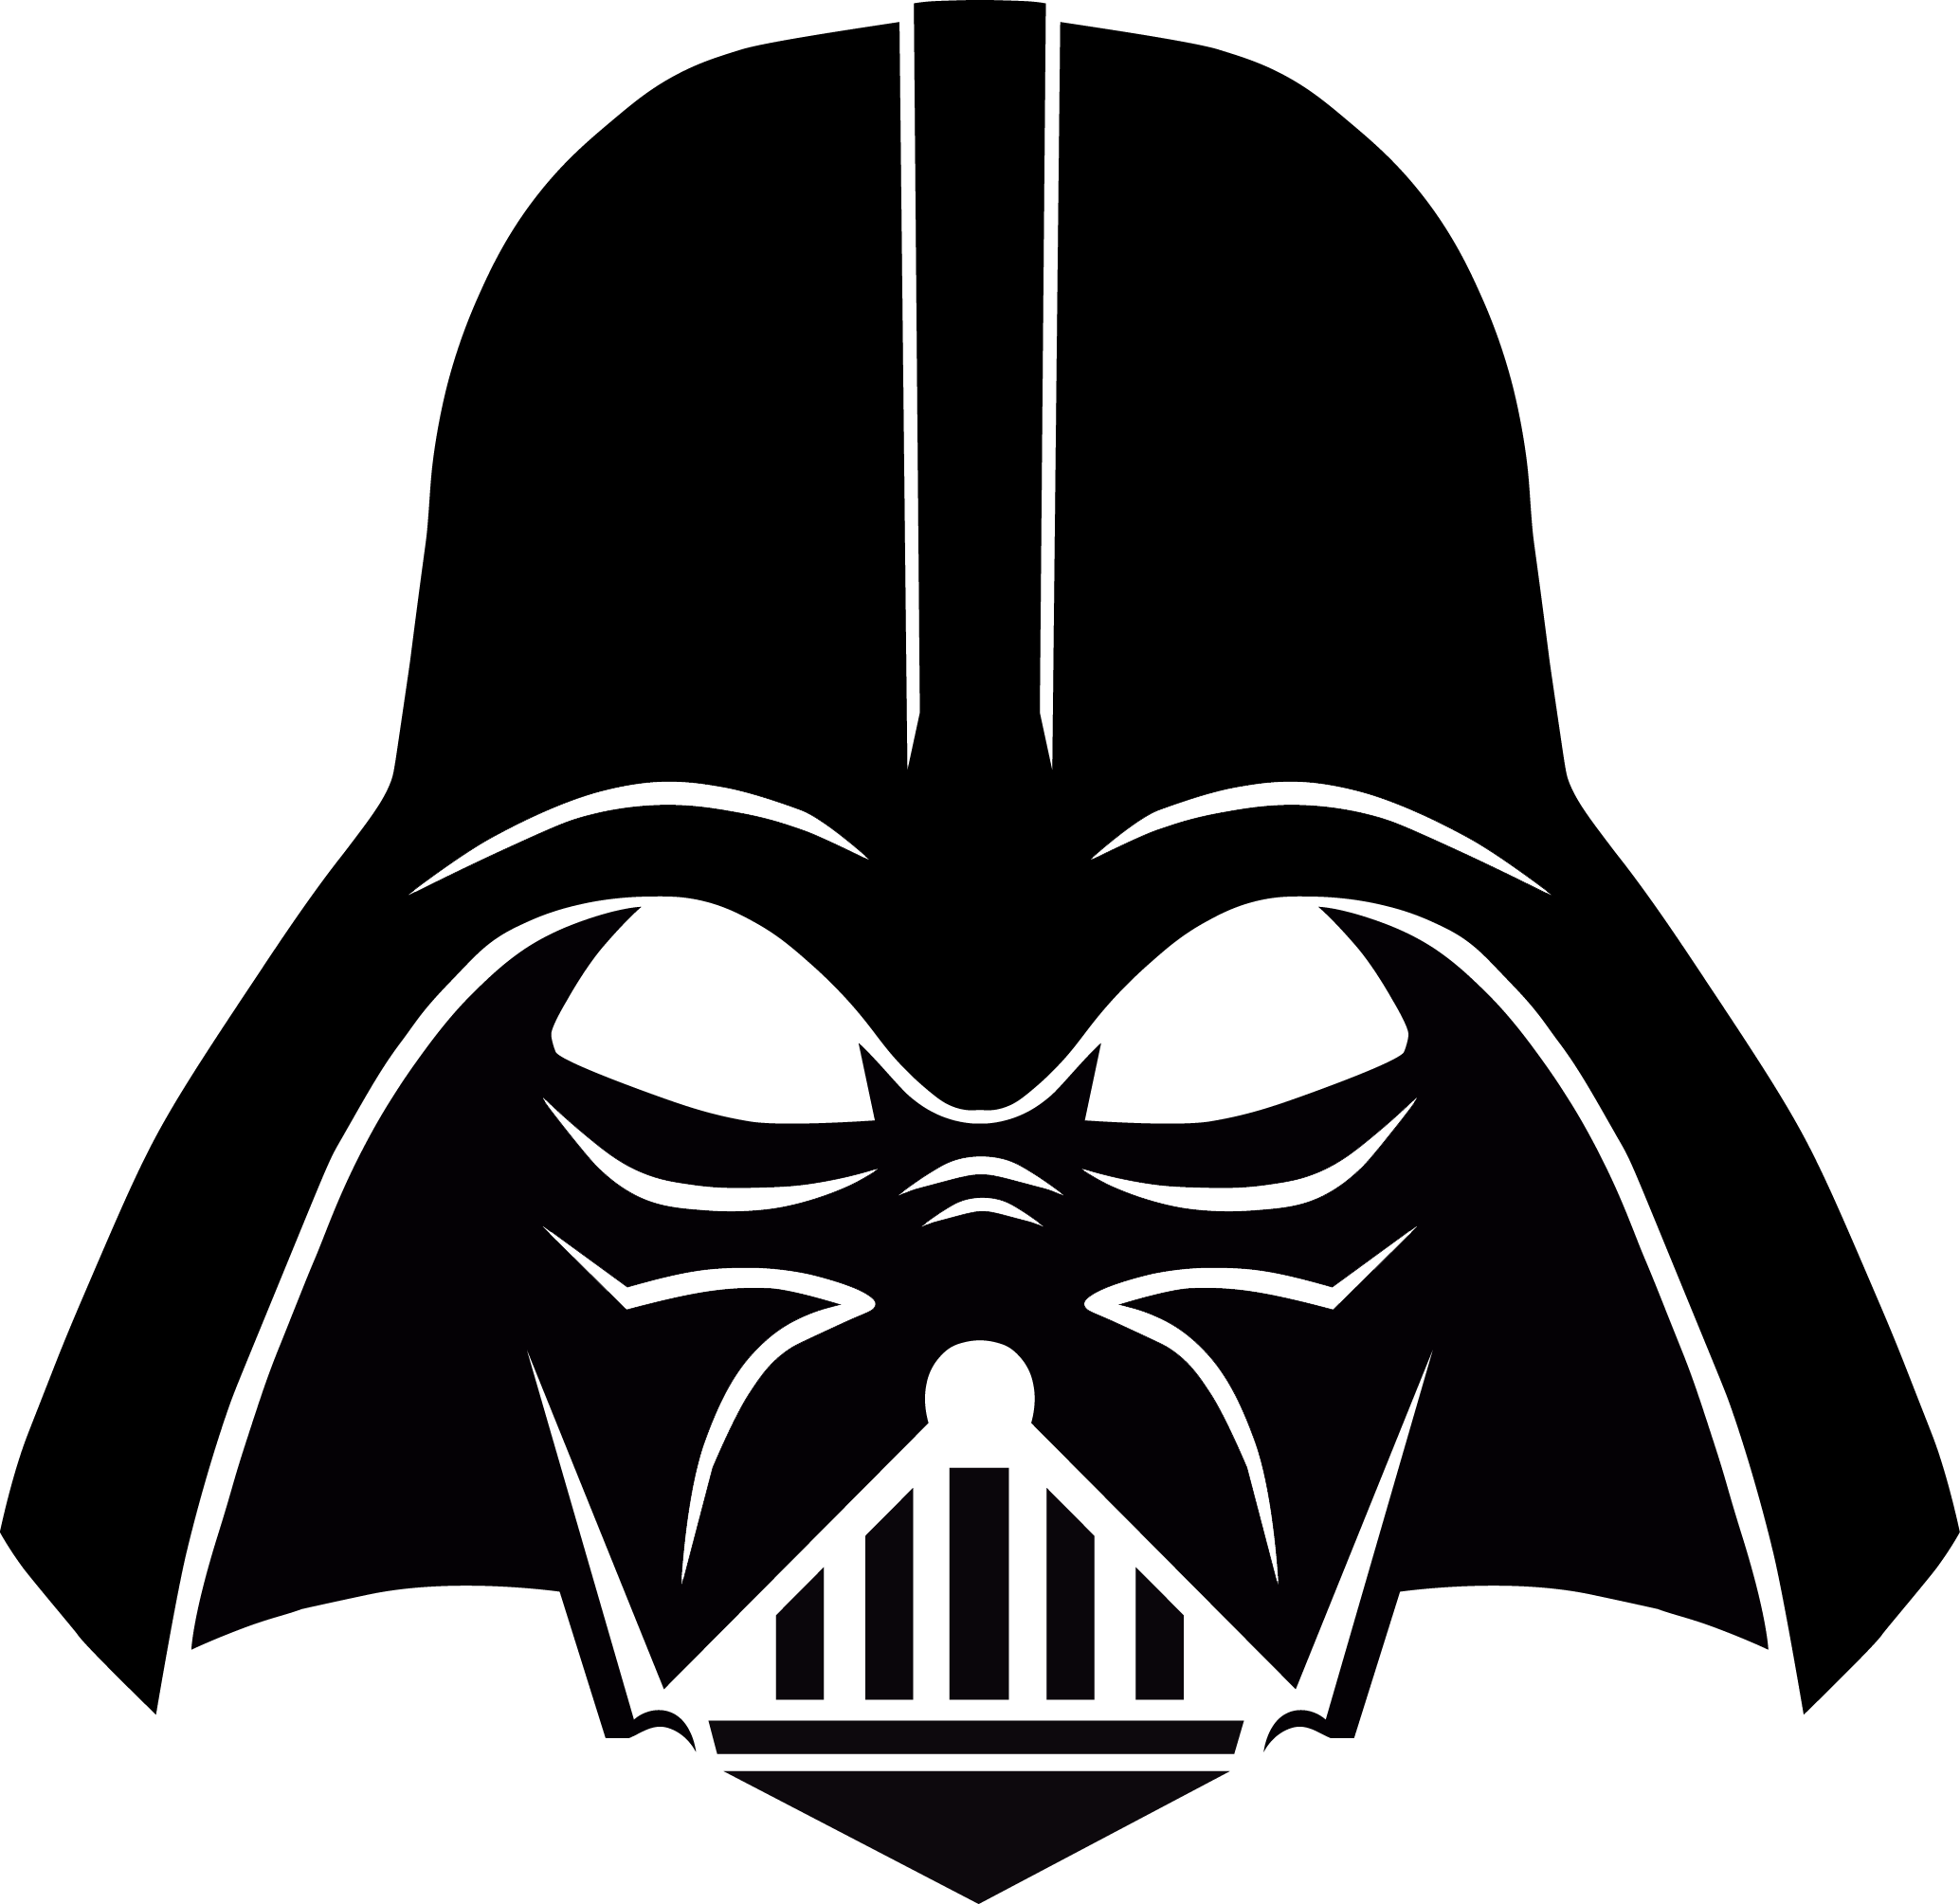 darth vader stencil free download darth vader stencil darth rh pinterest com darth vader clip art images darth vader clipart